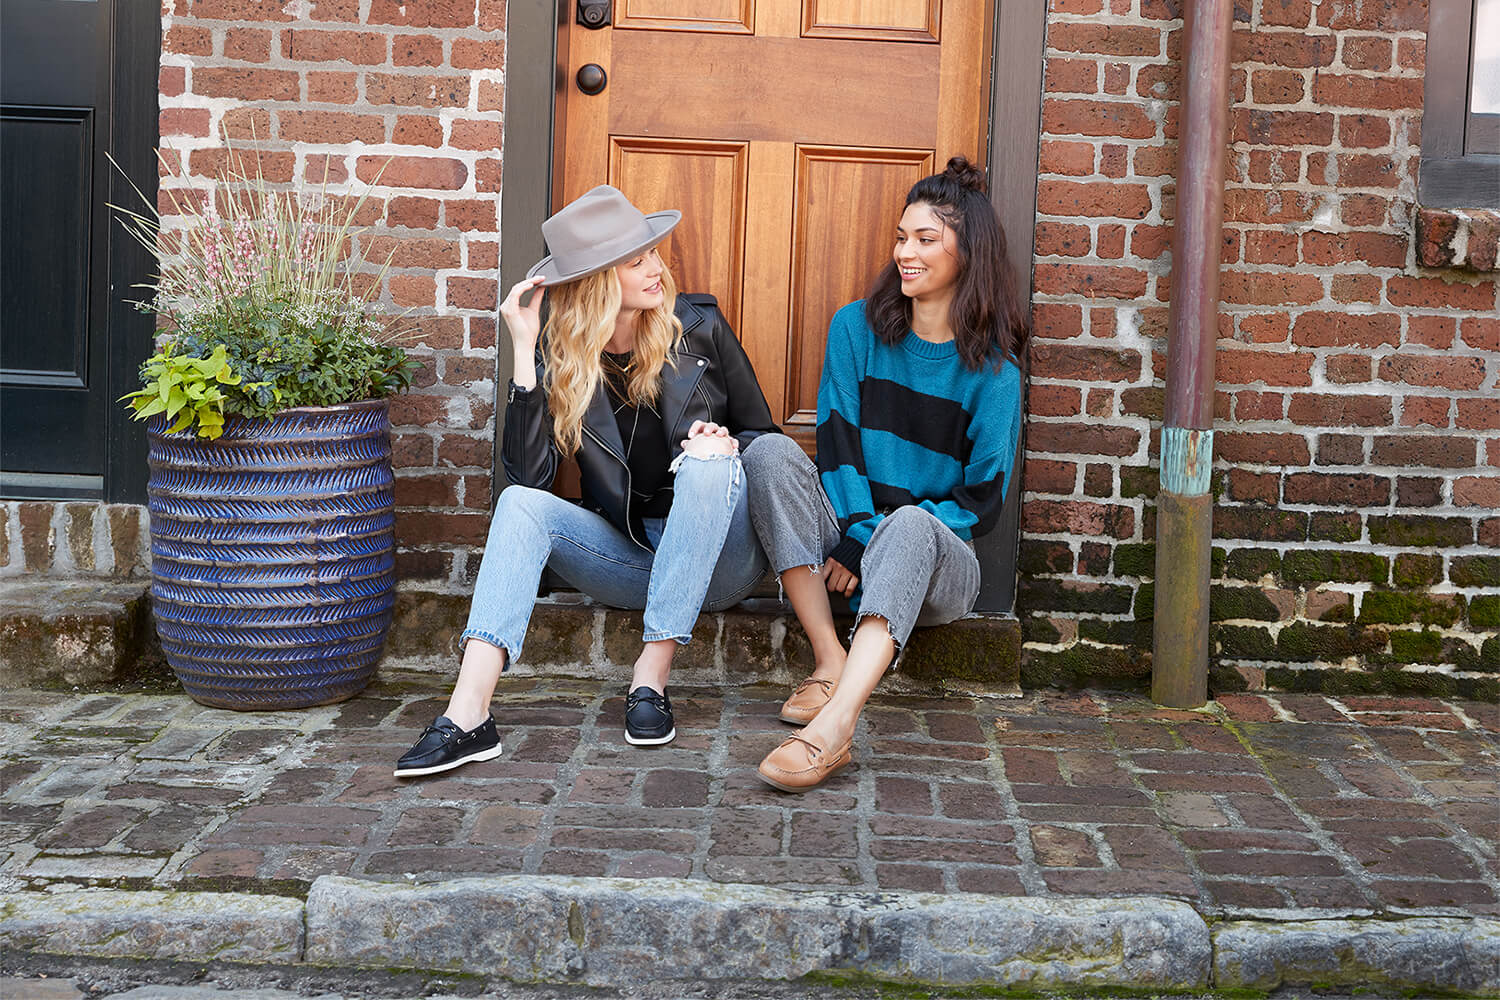 Two women sit in a doorway, laughing. They have nice shoes.